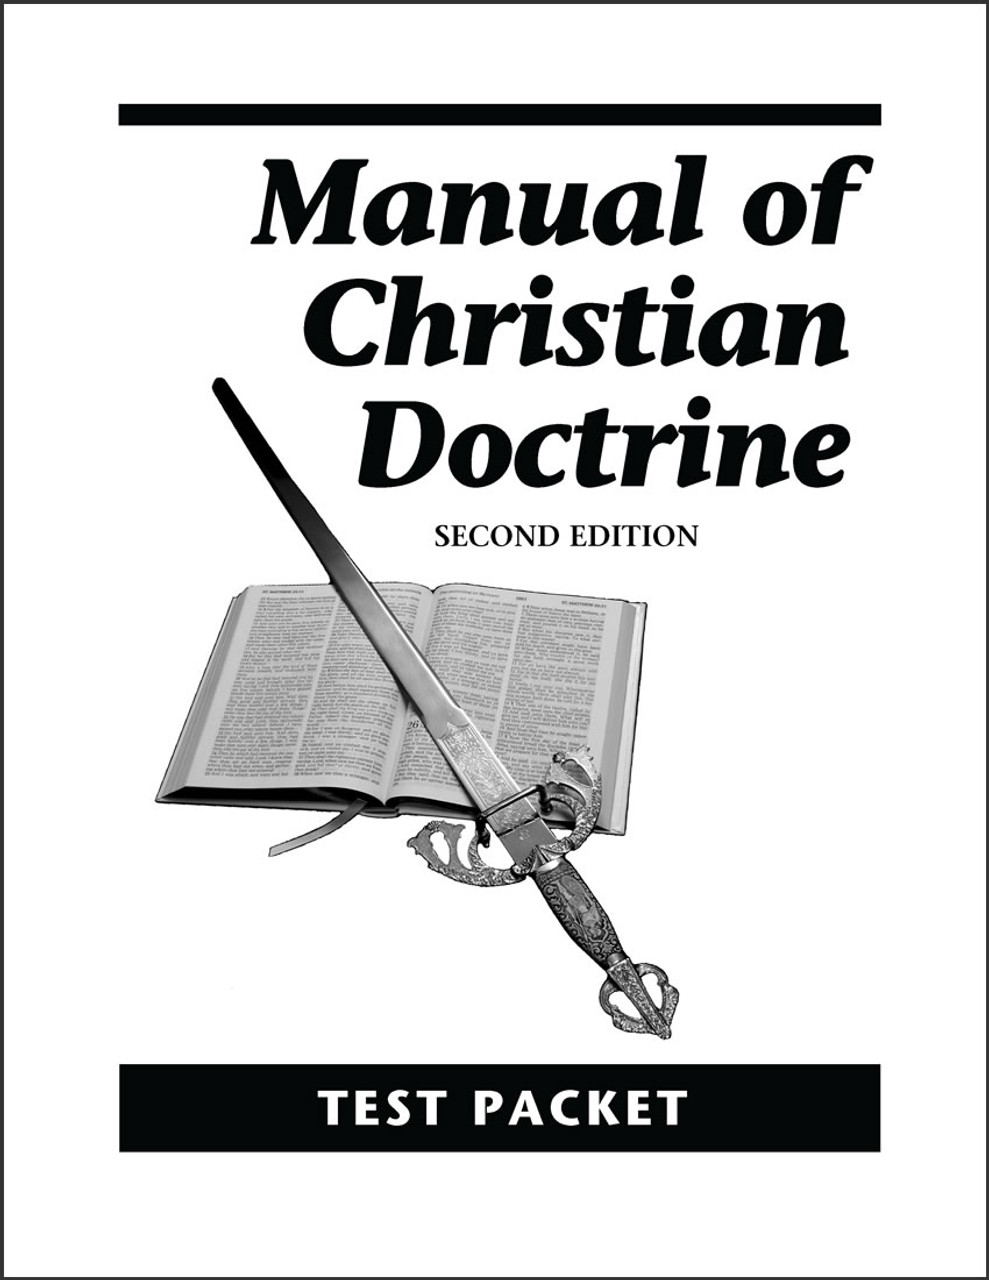 Manual of Christian Doctrine, 2nd edition - Test Packet